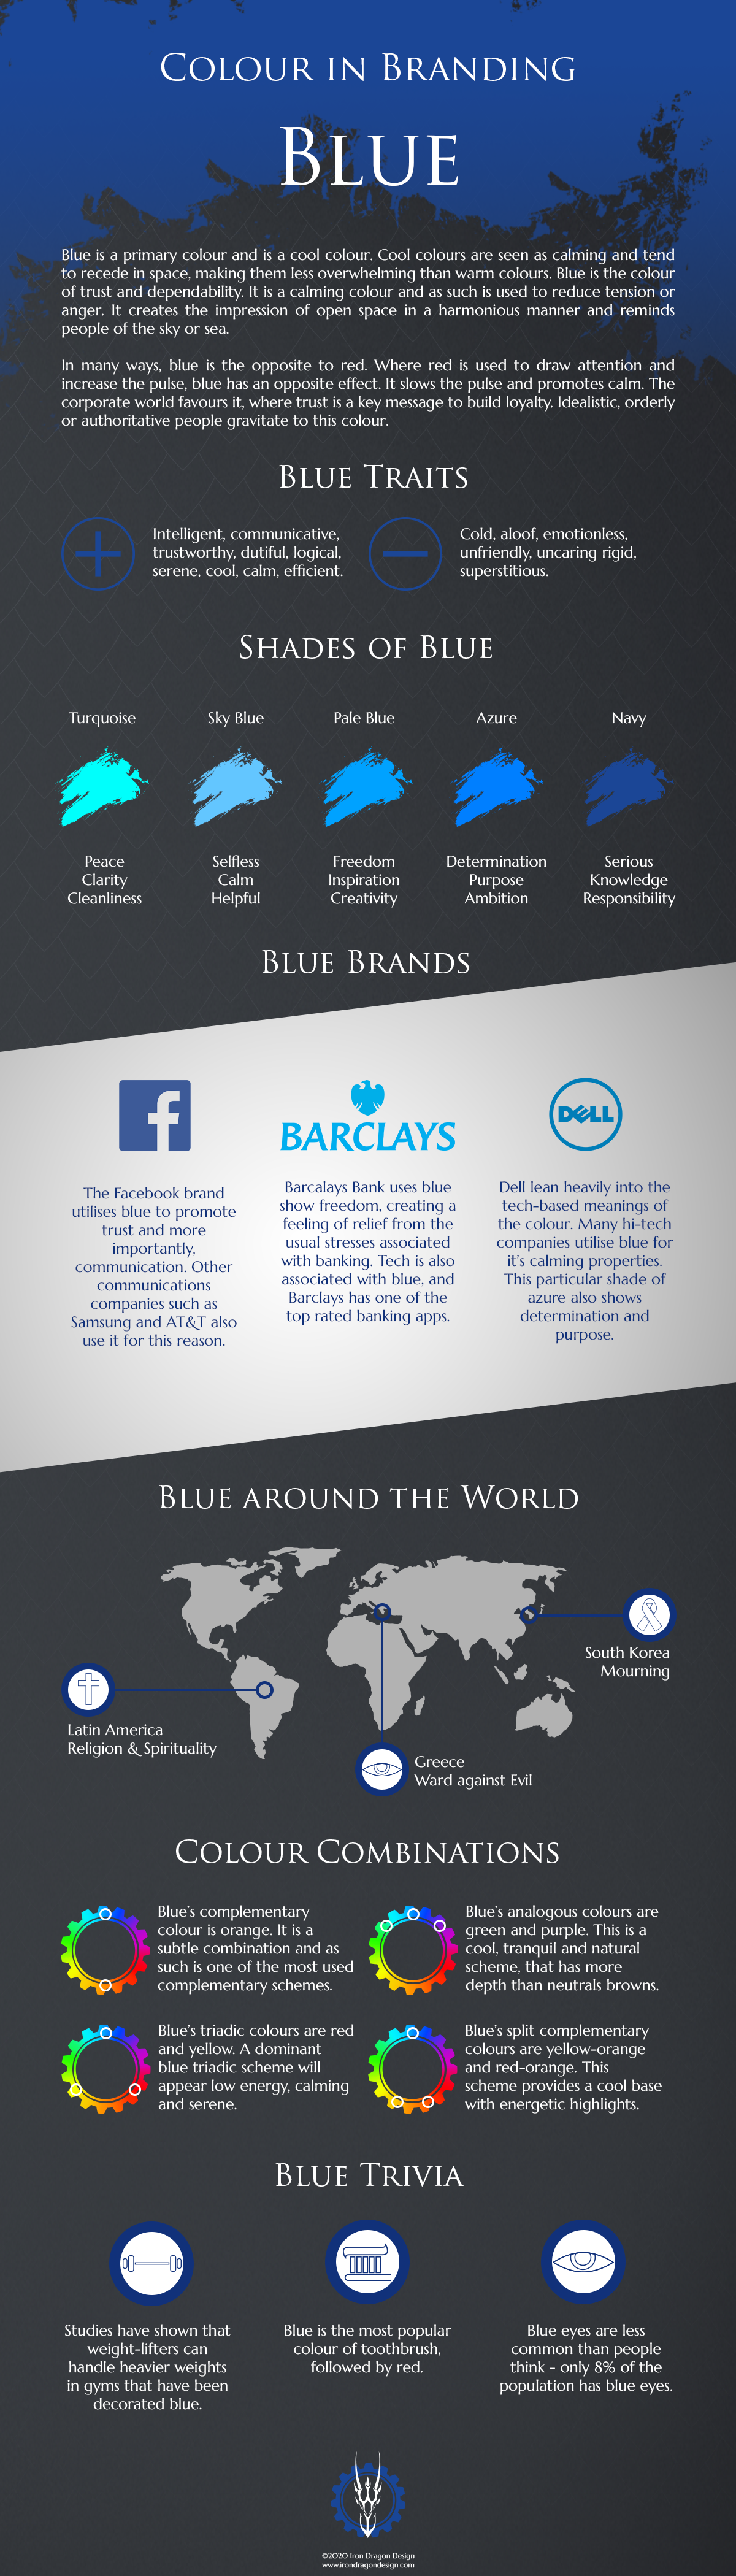 Colour in Branding Blue Psychology Infographic